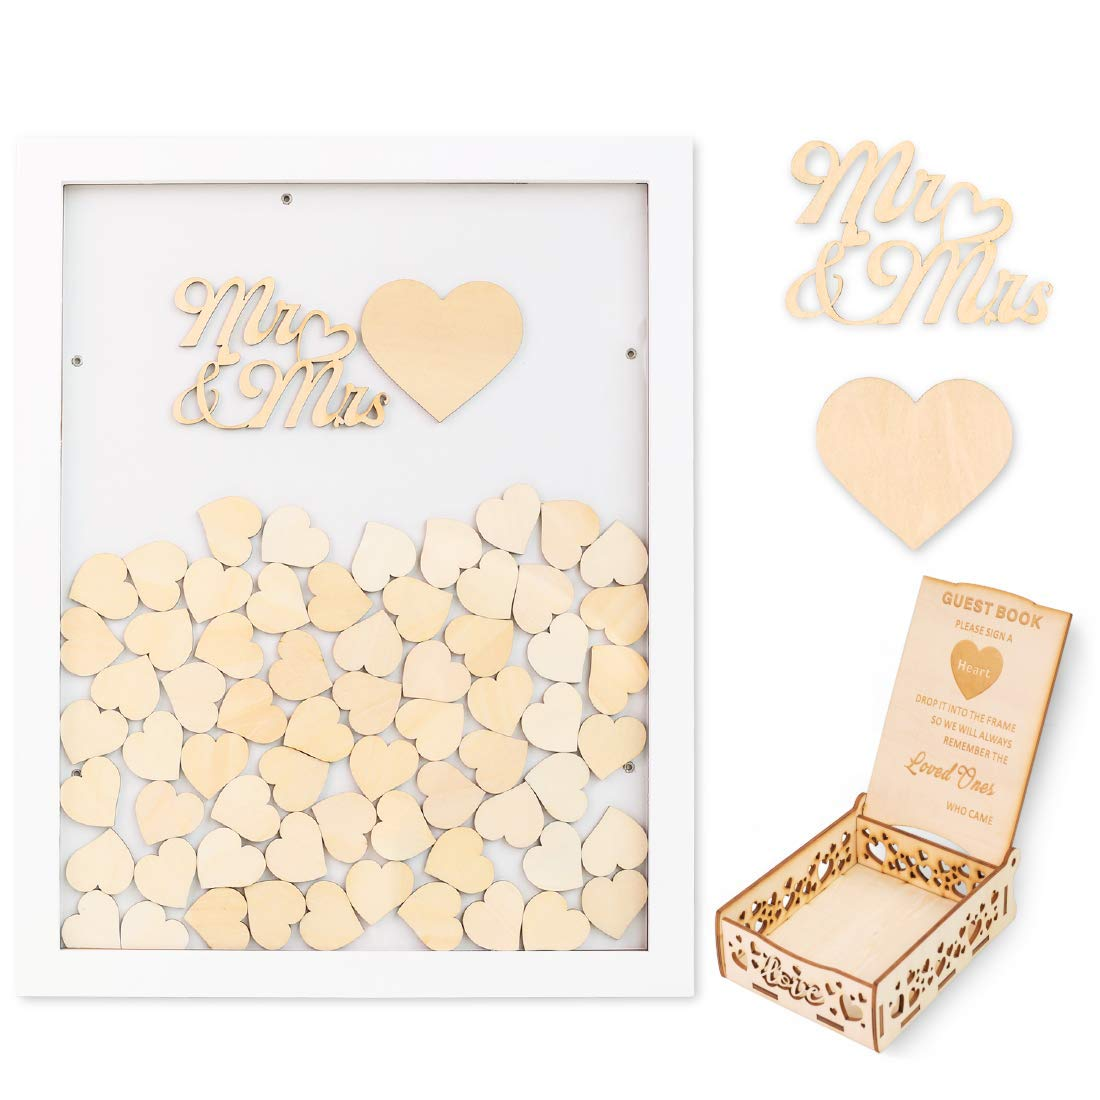 Creawoo Wooden Guest Book Frame Wedding Drop Box (Detachable Back) with 100 Blank Hearts and Free Guest Sign Box for Wedding Gifts Friends Present (White Color) by Creawoo